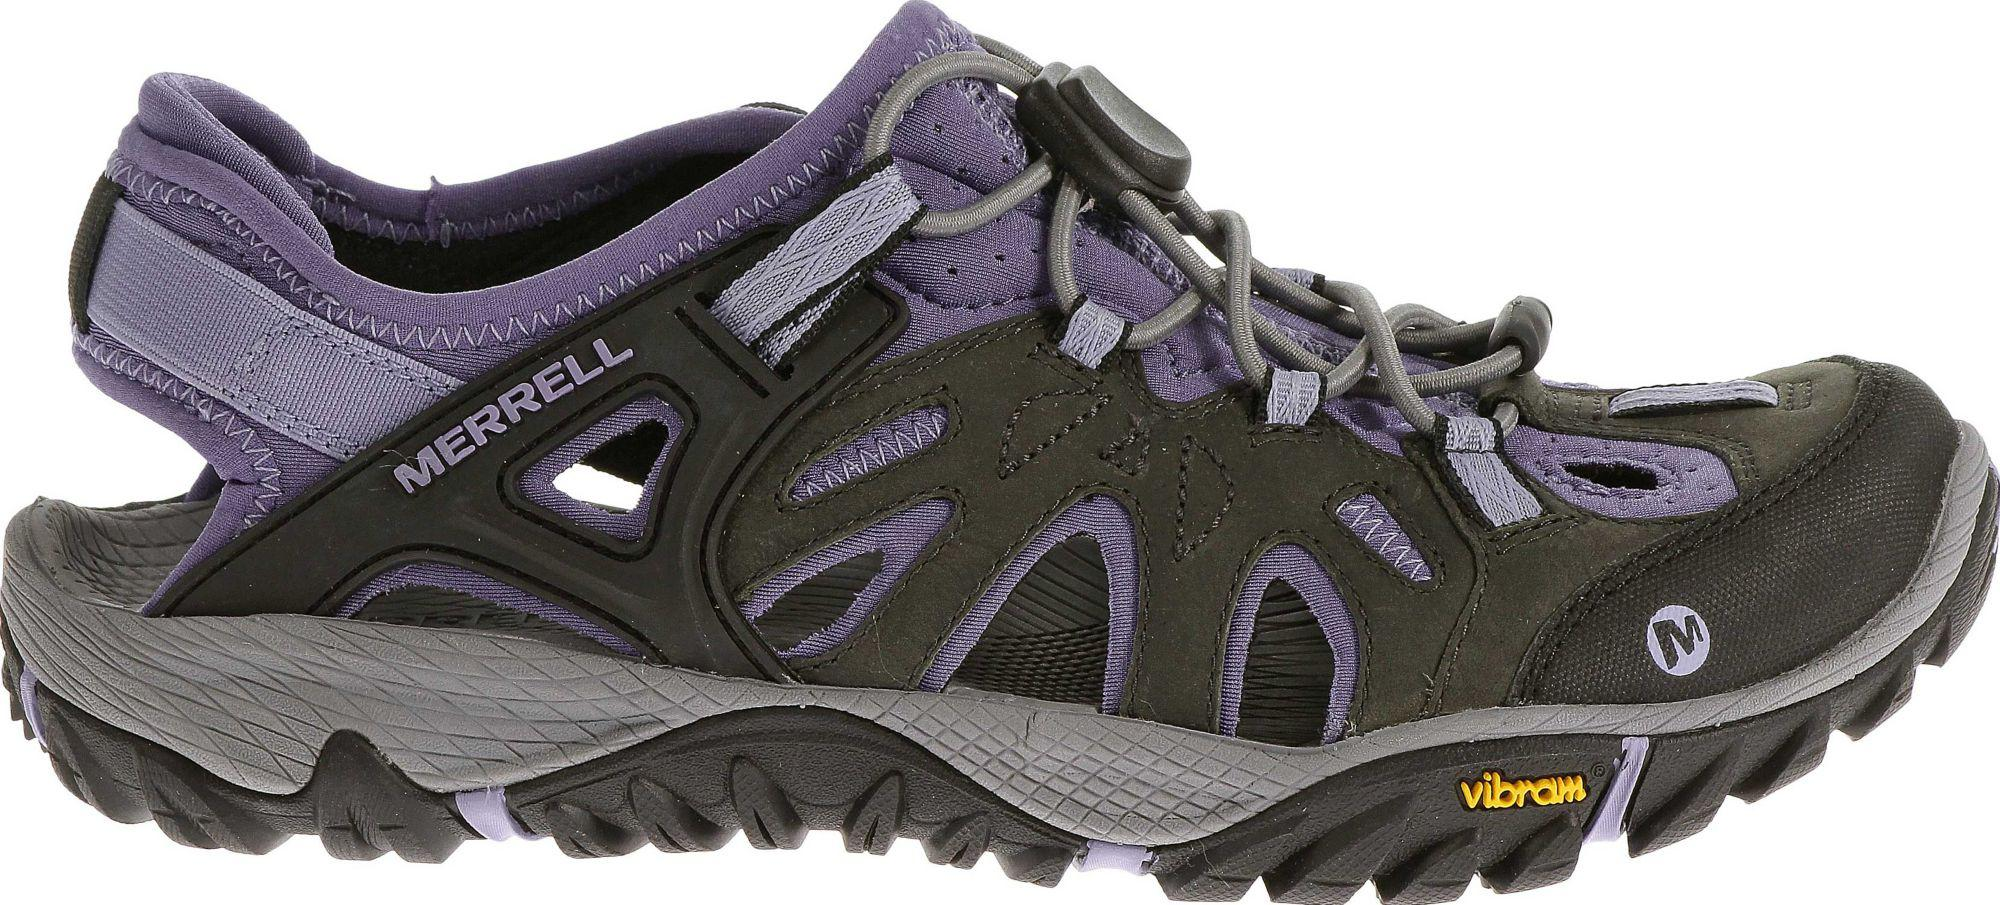 1927810e358e Merrell - Black All Out Blaze Sieve Sandals for Men - Lyst. View fullscreen